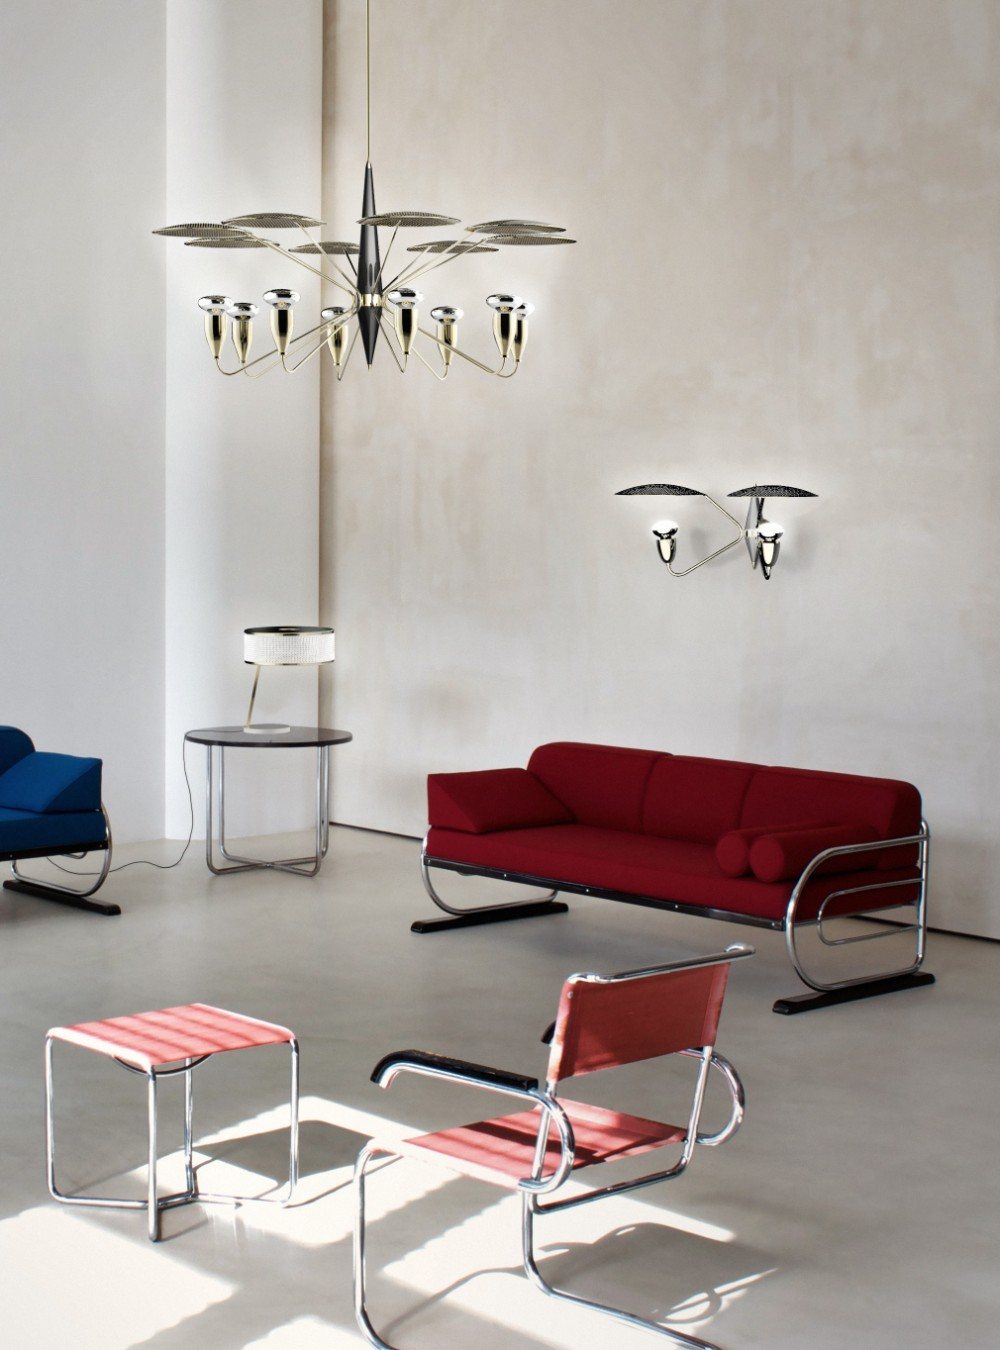 Here Is a Modern Ceiling Lamp That Will Make You Smile Today!